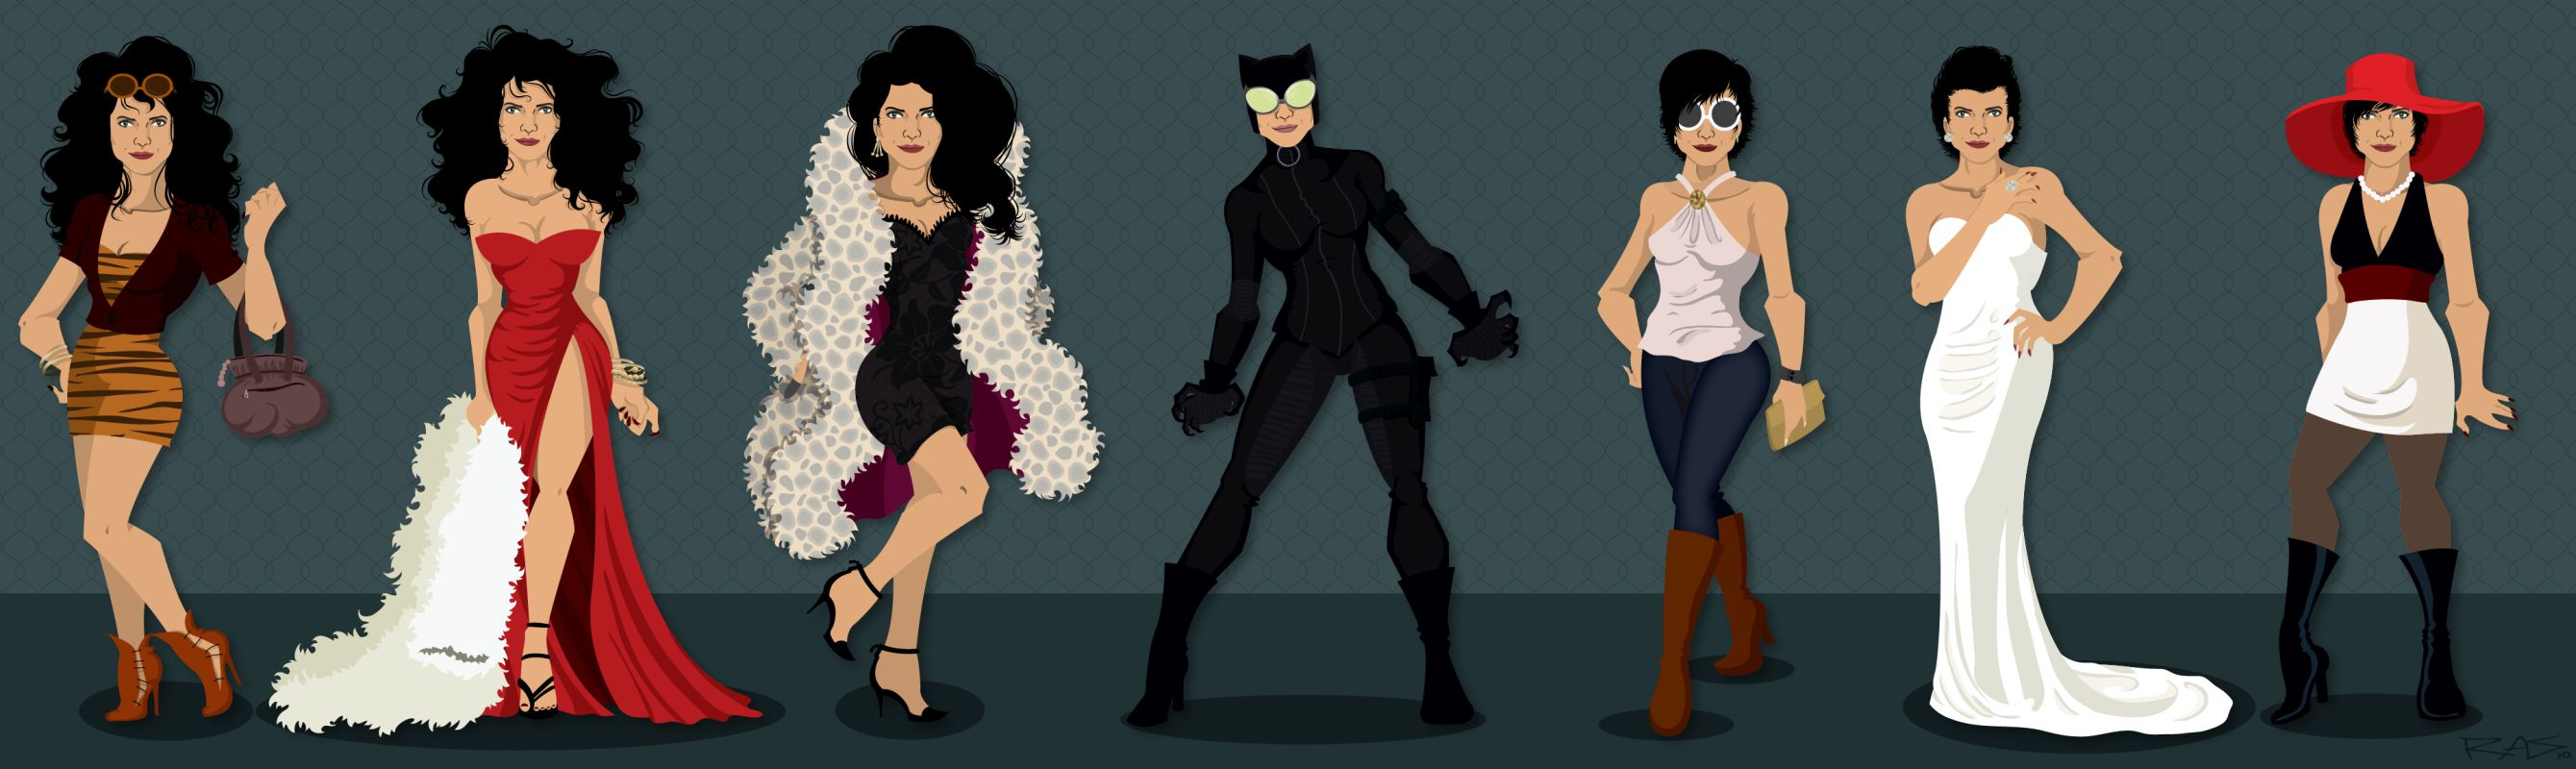 Movie: Catwoman concept by RickytheRockstar